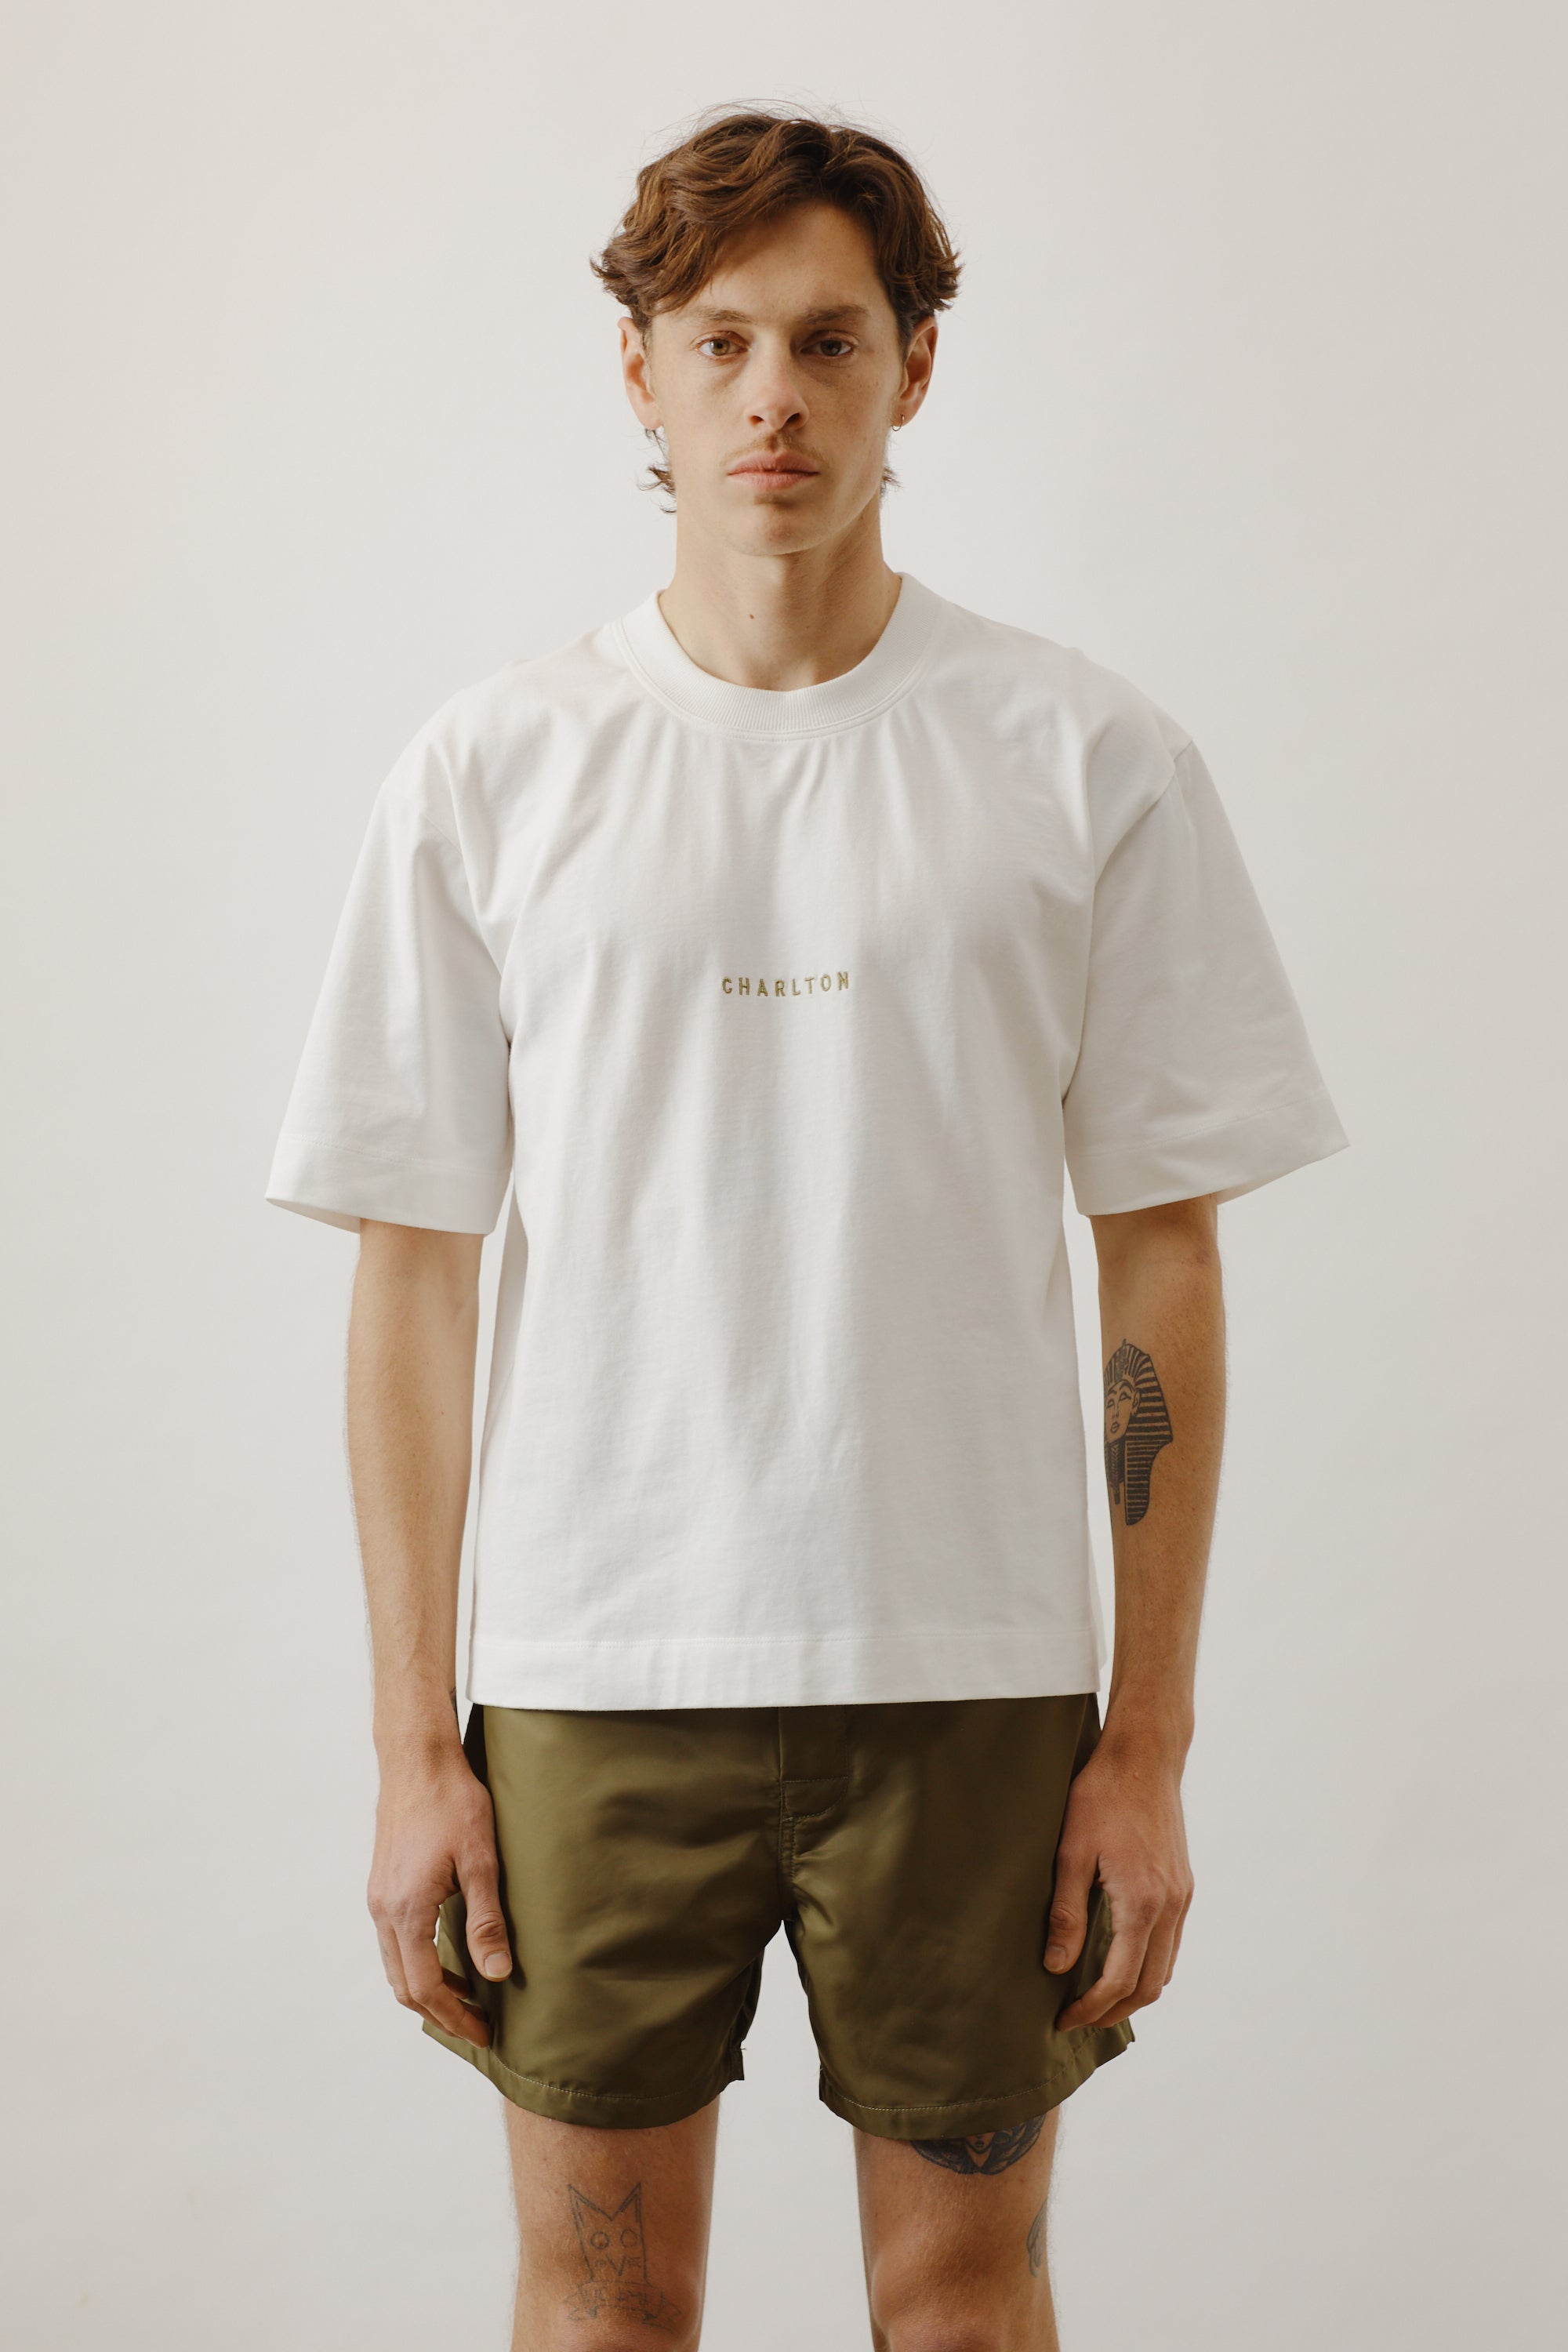 Embroidered Charlton T-shirt